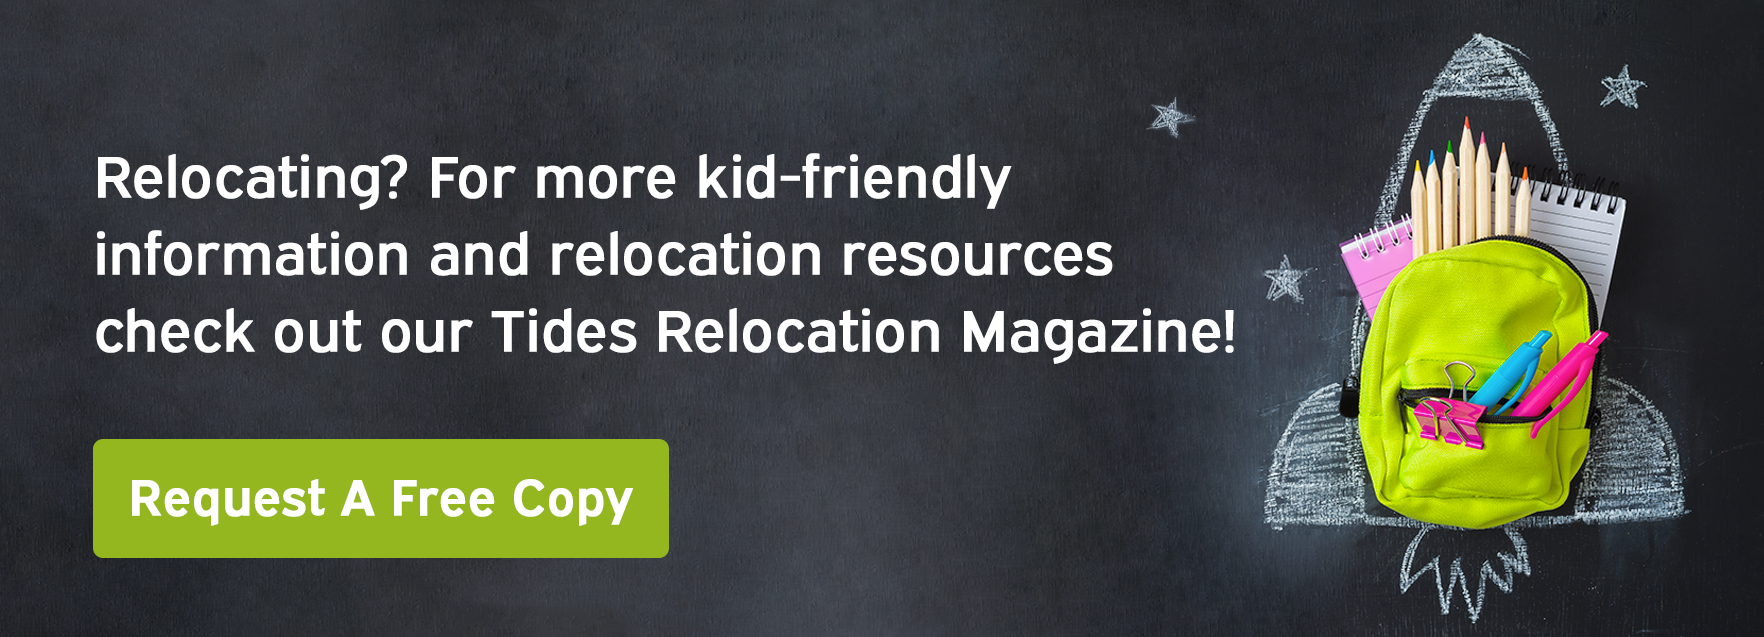 Check out Tides Magazine for more kid-friendly information